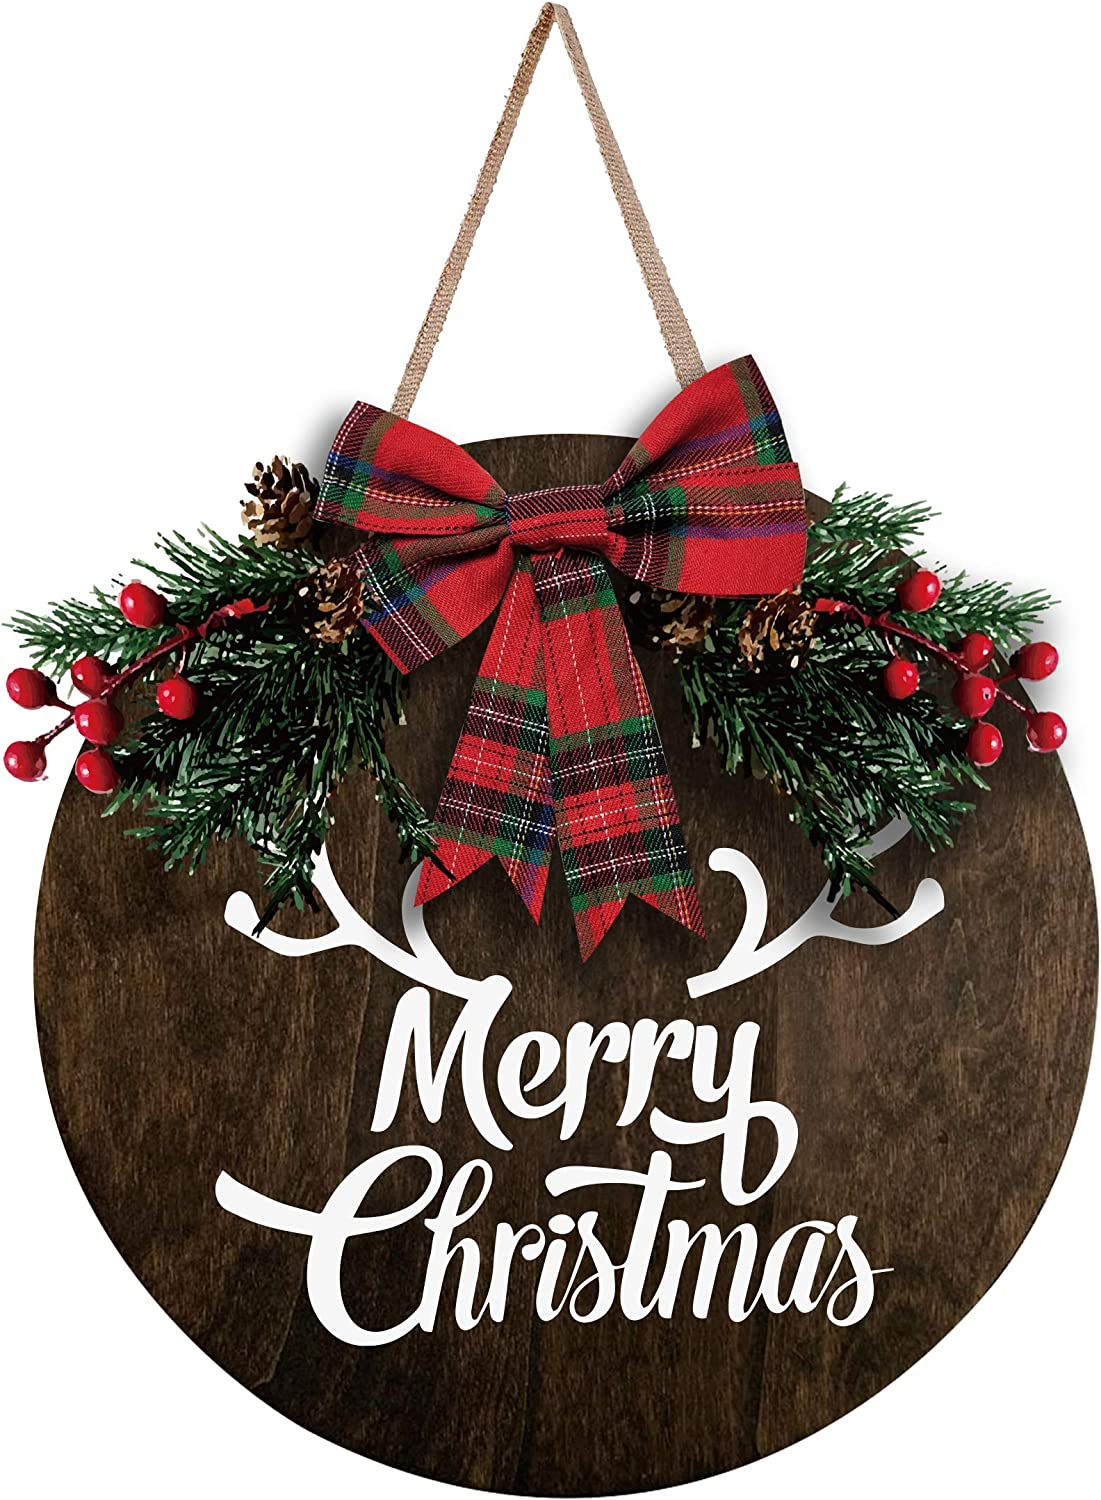 MayAvenue Merry Christmas Wreaths Decor Sign Front Door, Round Wood Hanging Sign with Ribbon Bow and Artificial Pine Branches Green Leaves Farmhouse Porch Decorations for Home Christmas, Brown